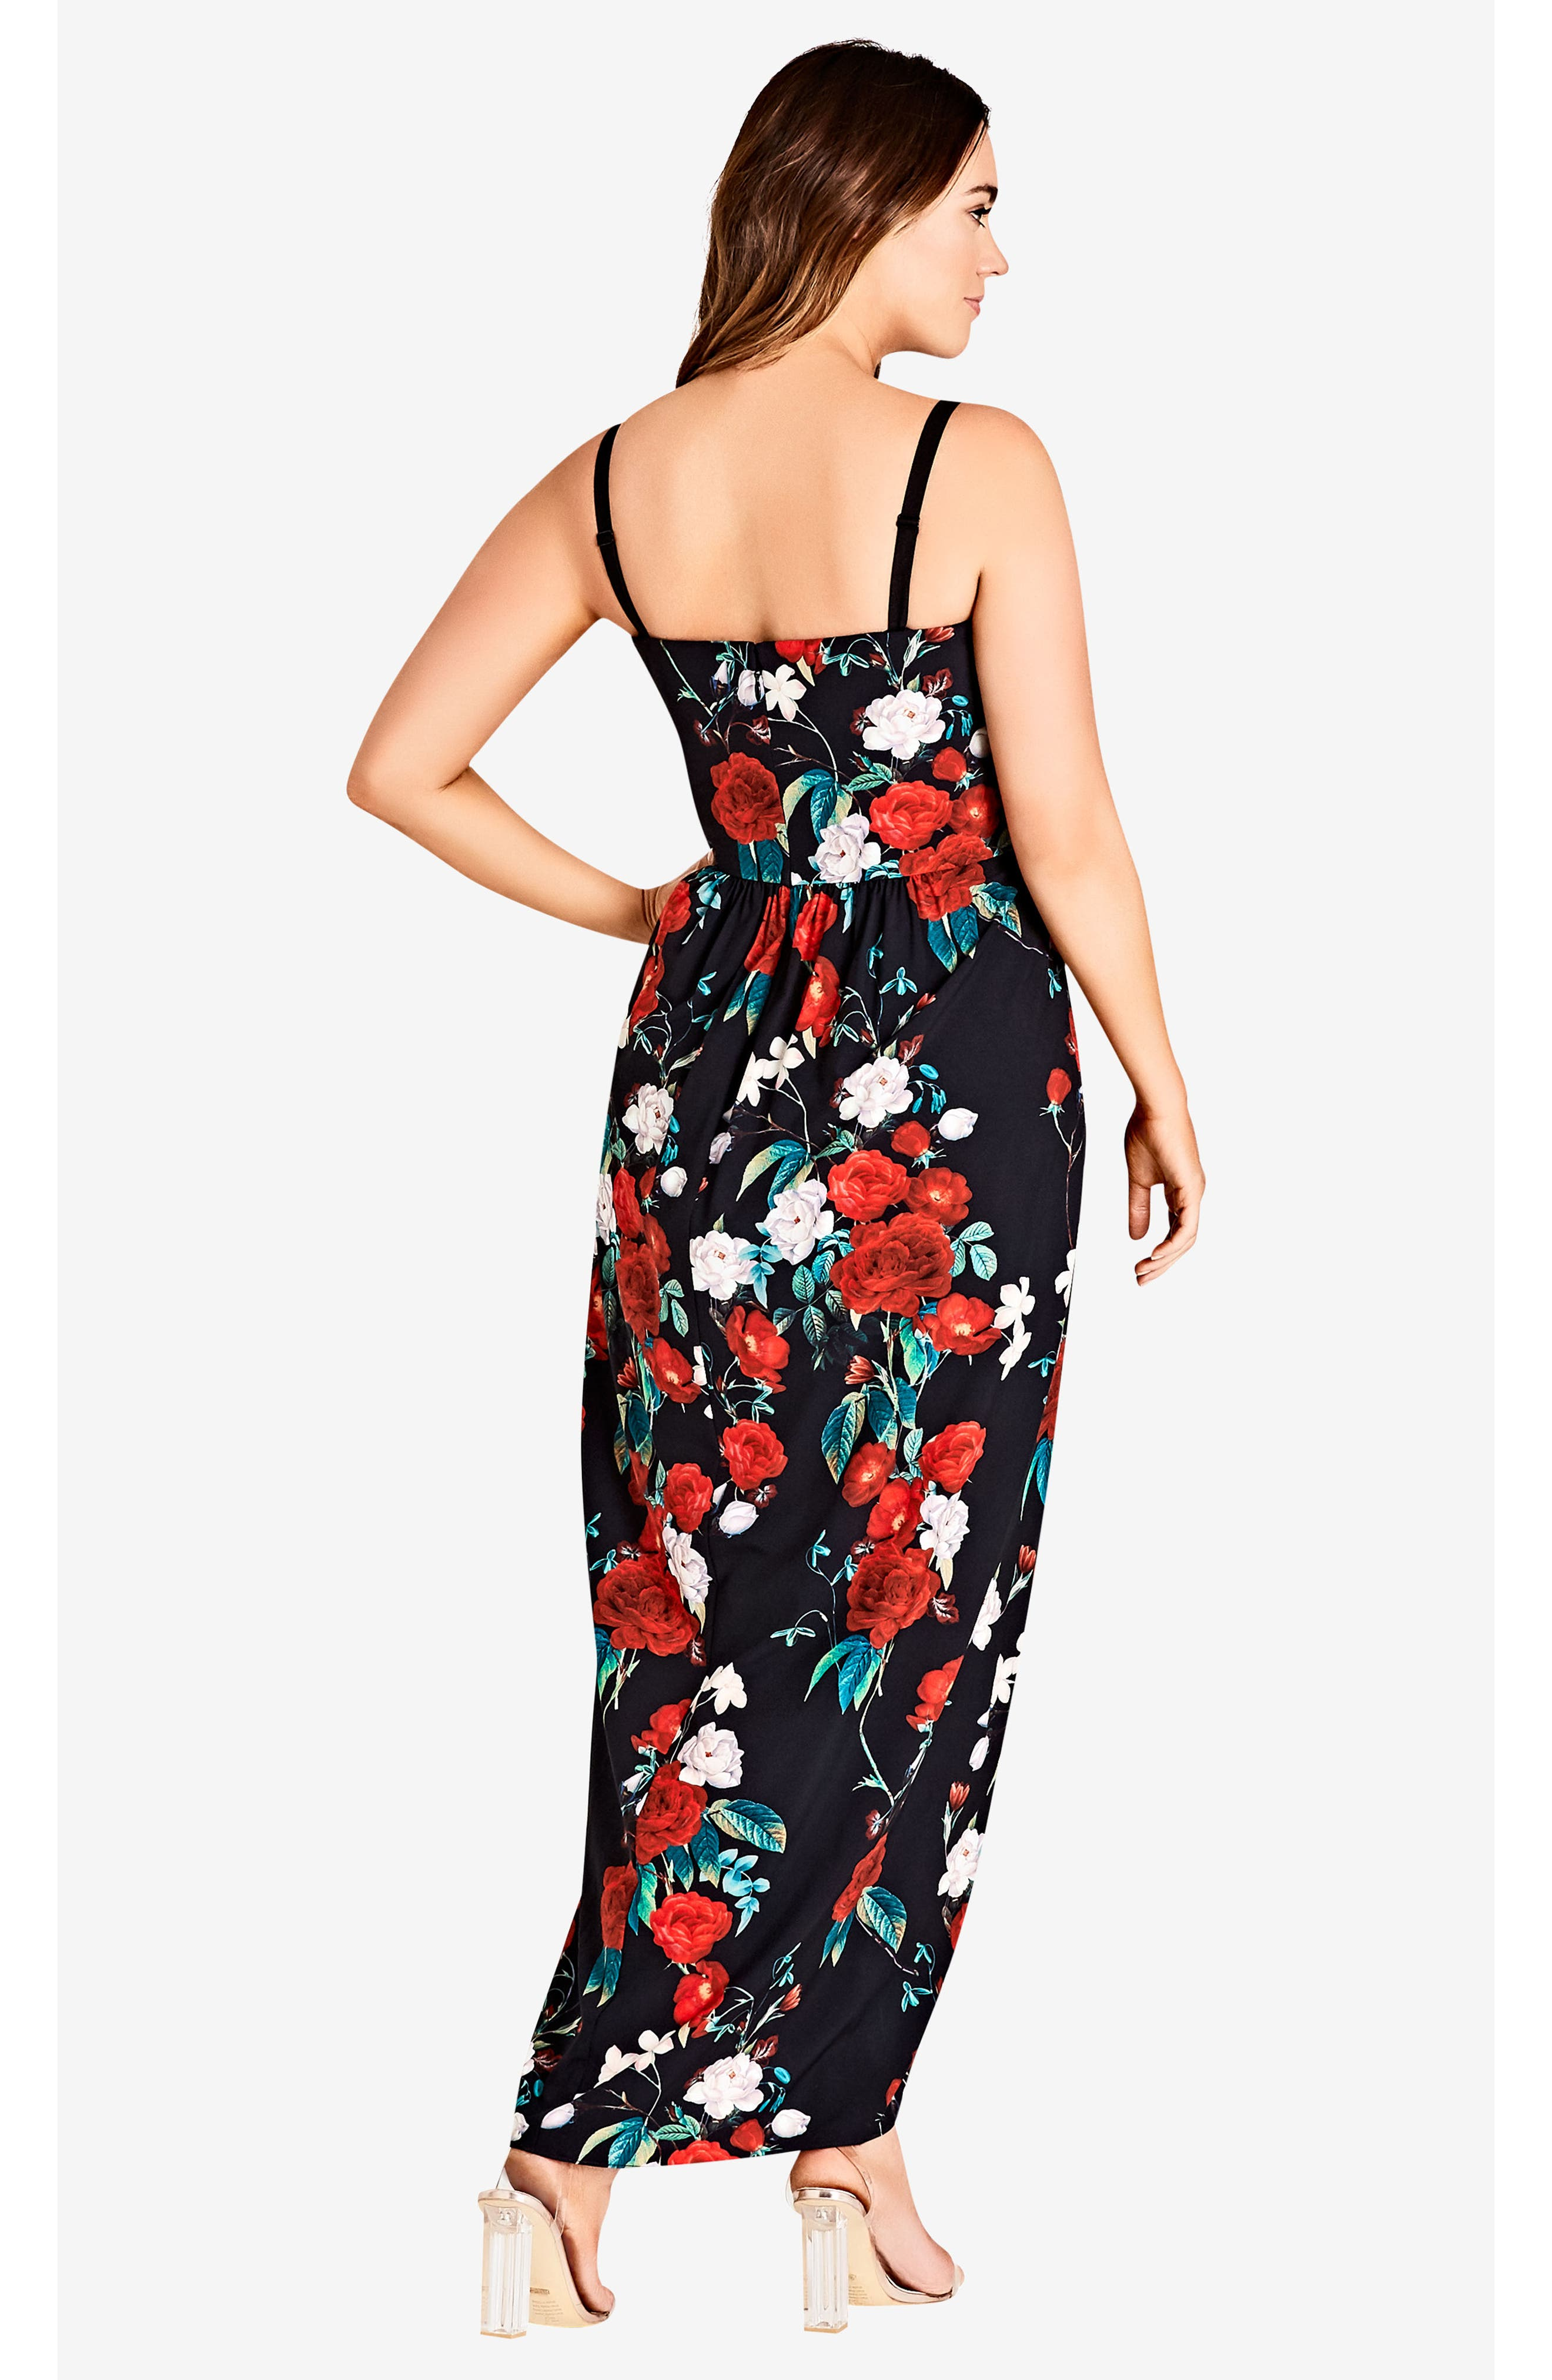 Come Hither Maxi Dress,                             Alternate thumbnail 5, color,                             001